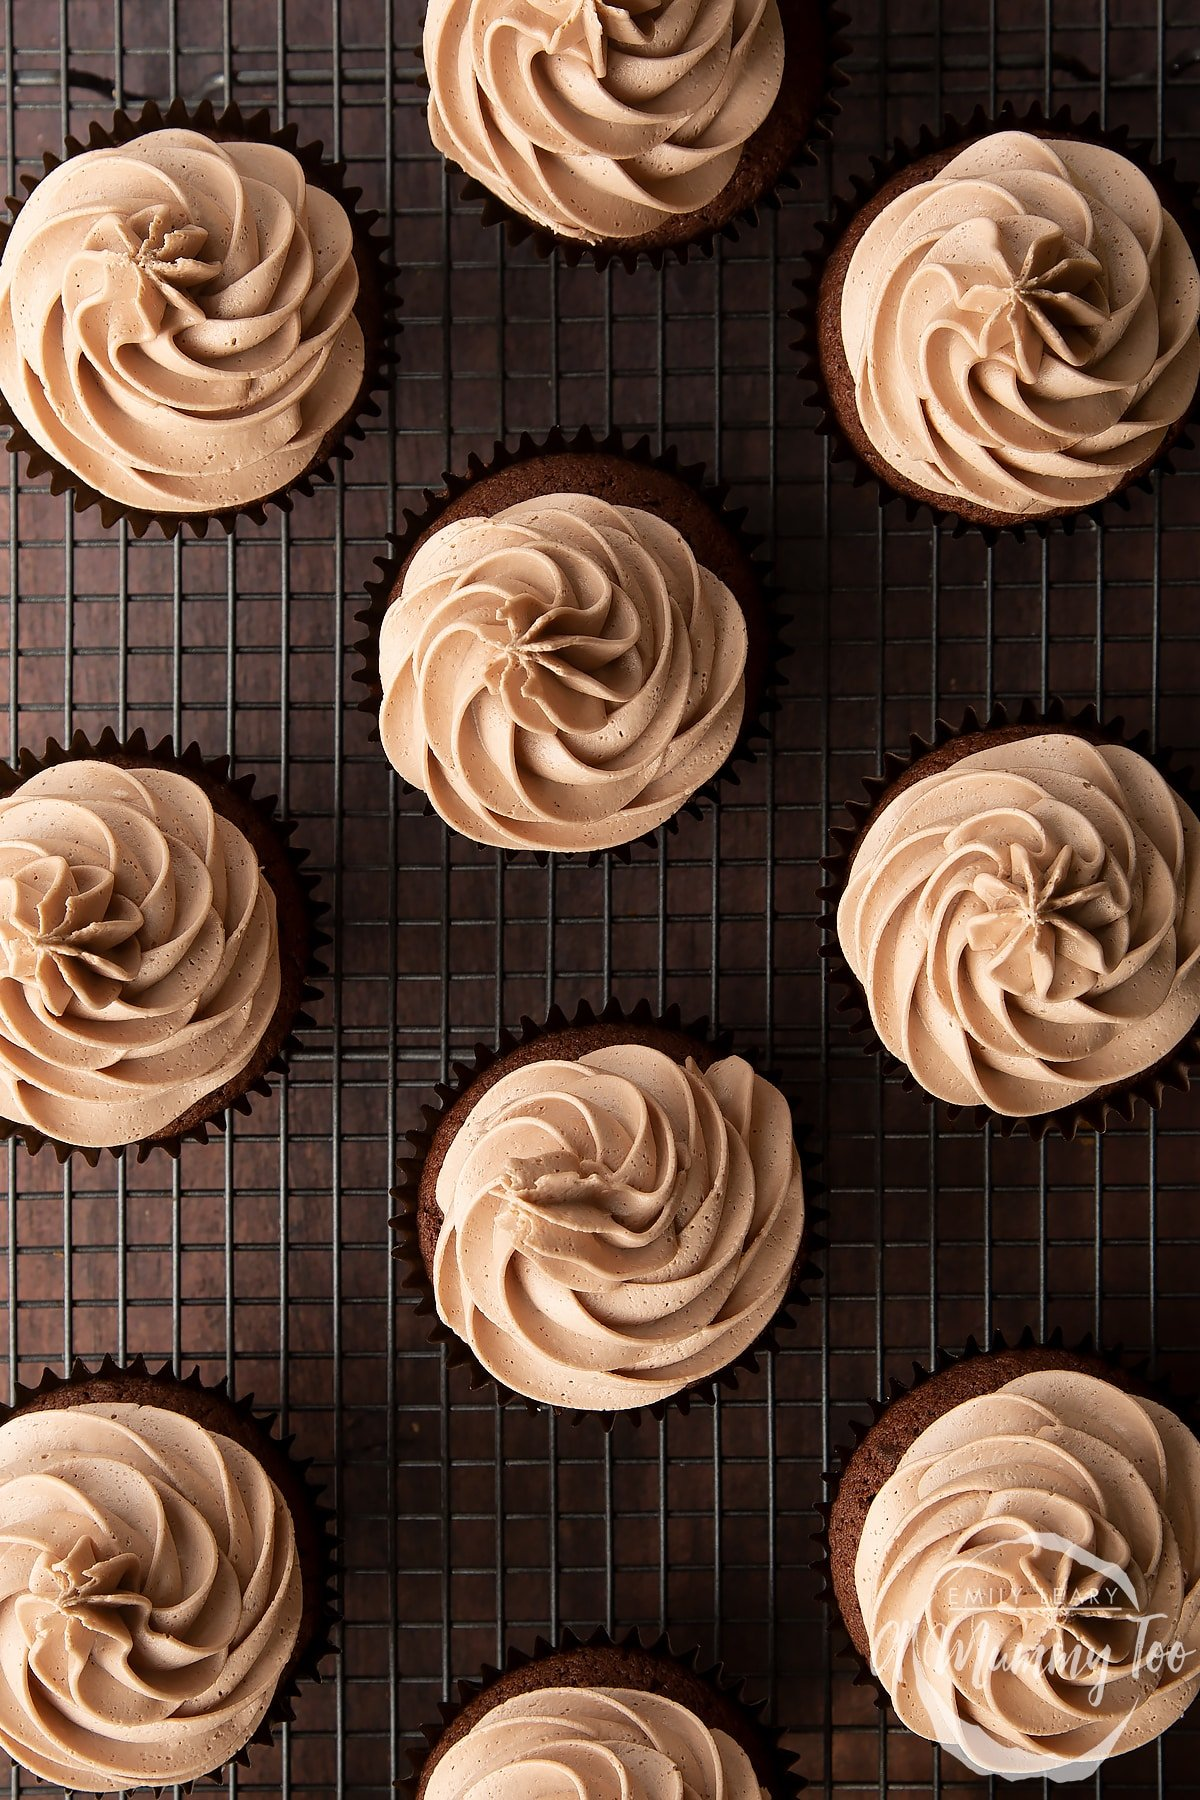 Baileys icing piped onto a chocolate cupcakes on a wire cooling rack.